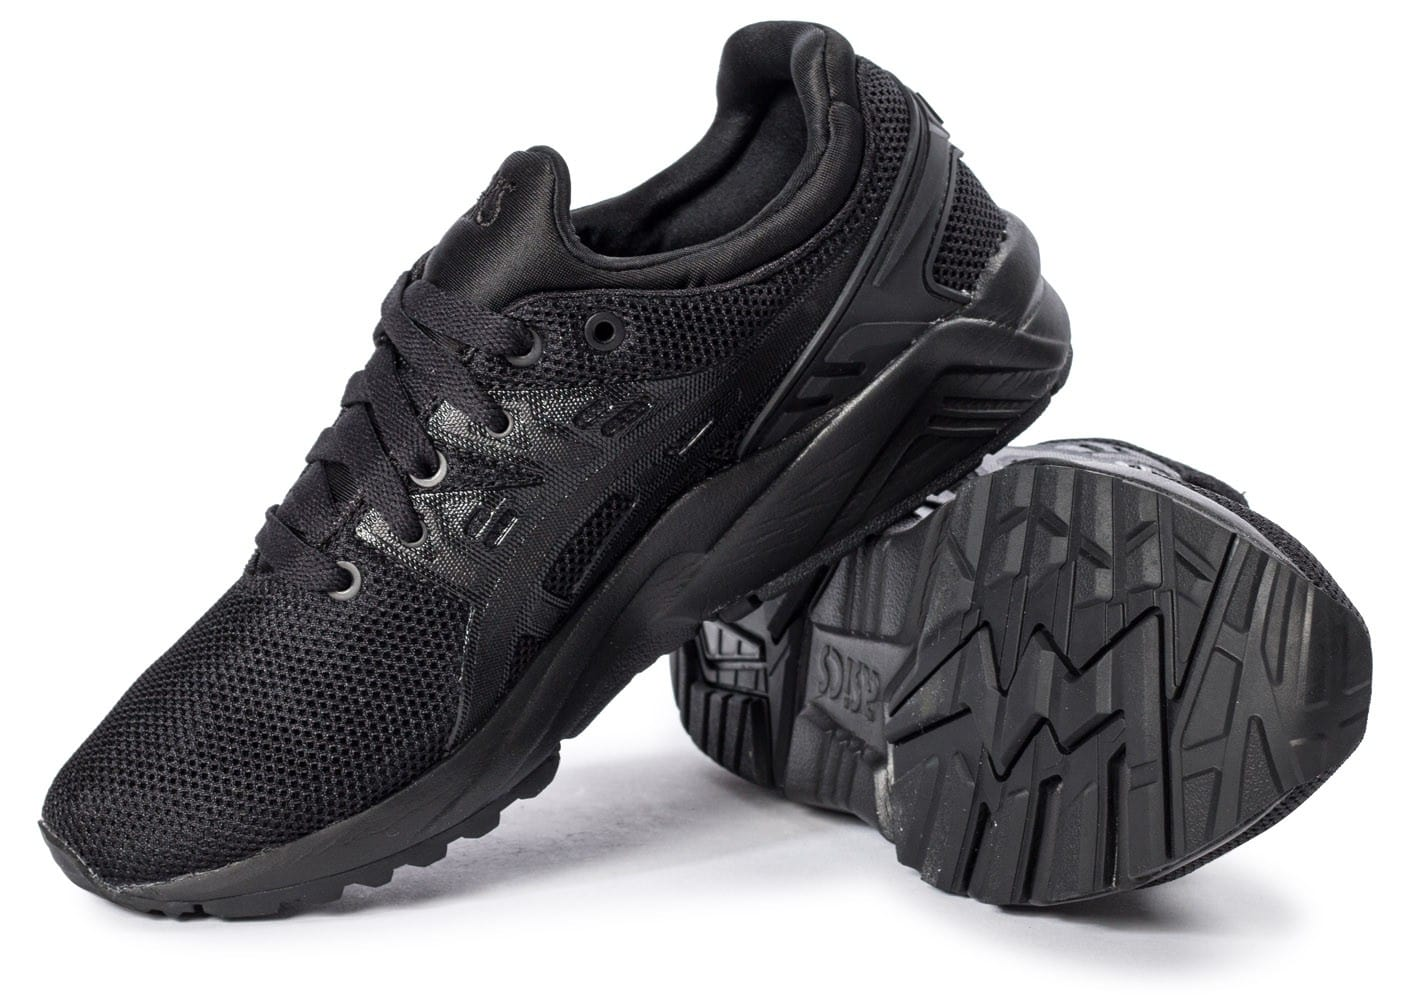 ... Chaussures Asics Gel Kayano Trainer Evo W triple black vue intérieure  ... 54ad77624026